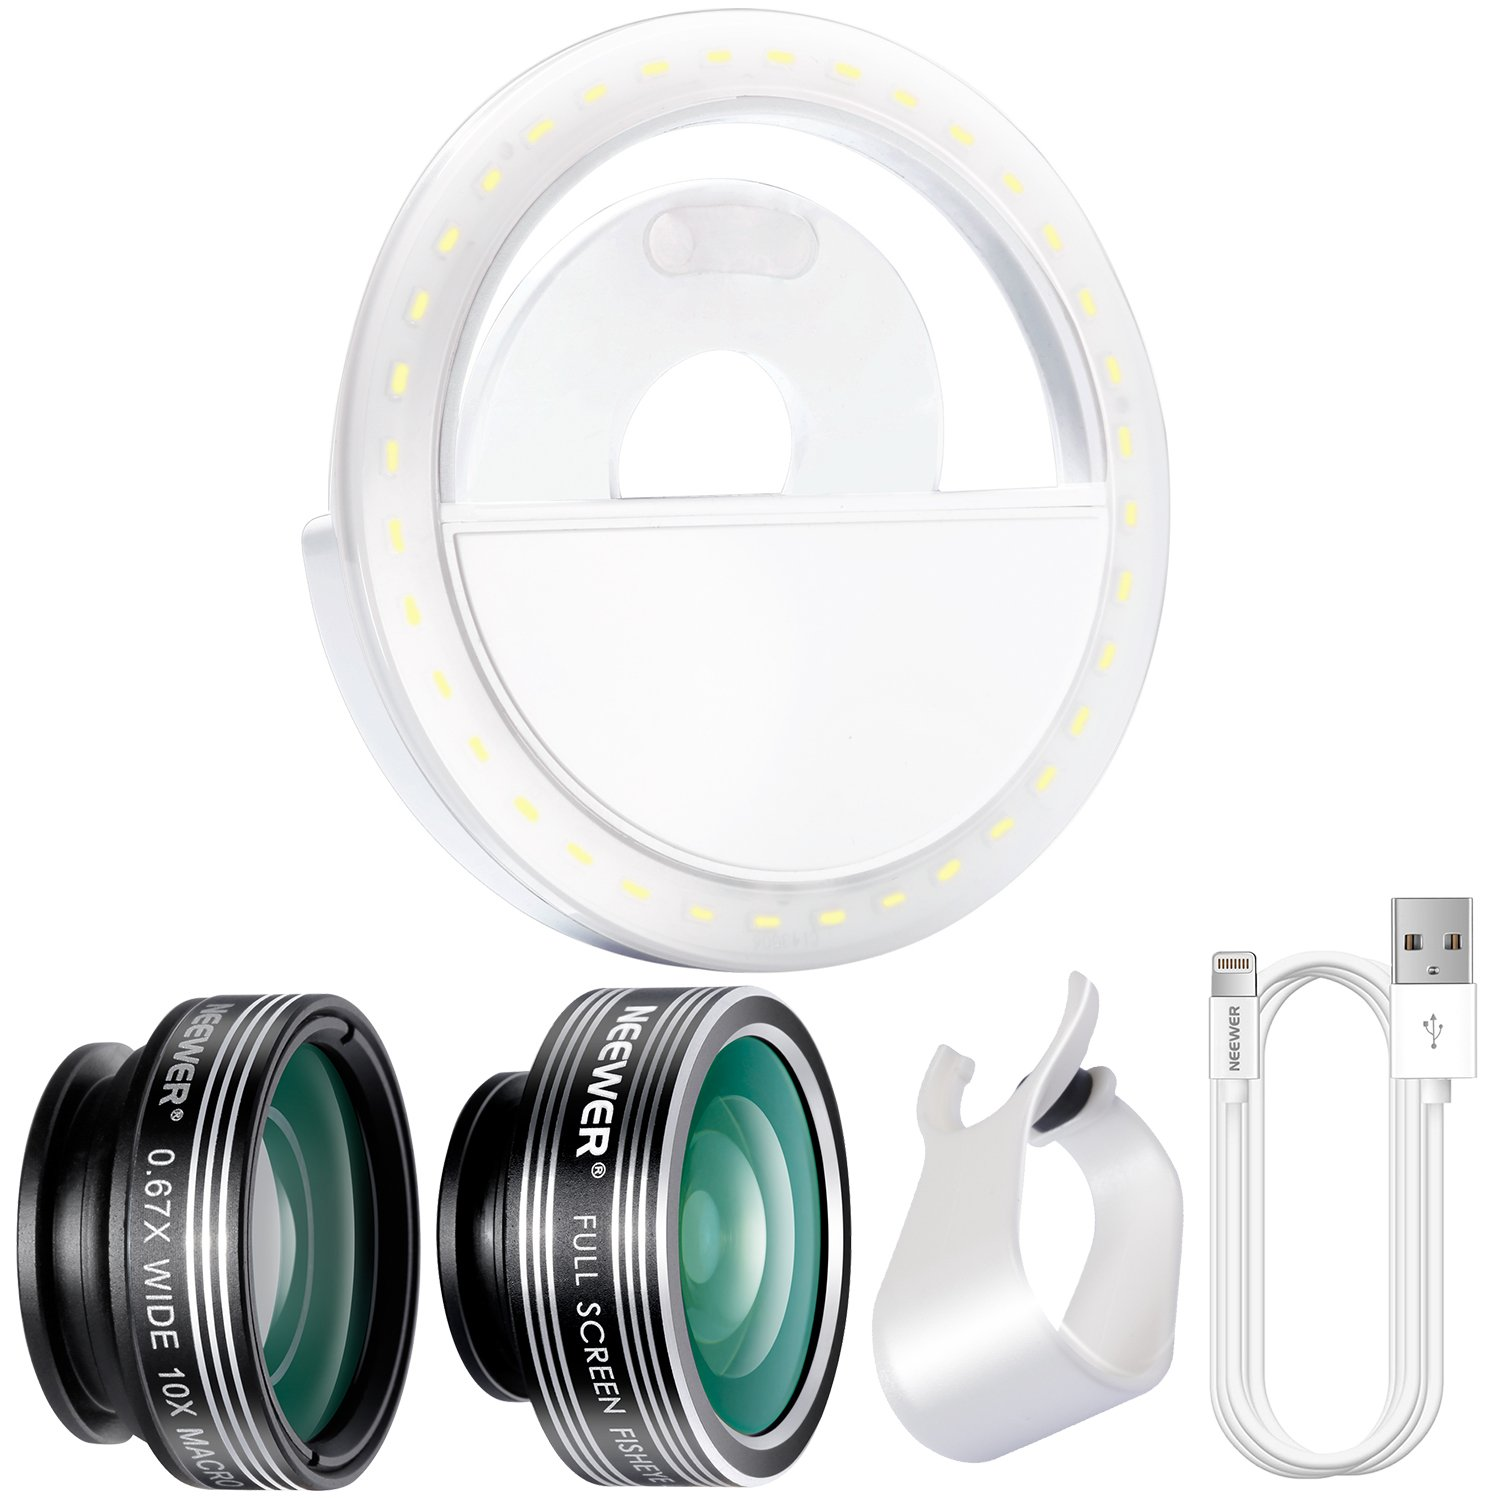 Neewer Cellphone Photography Clip-on Lens and Light Kit: 3-in-1 Lens Kit, LED Selfie Ring Light with 3 Level Brightness, 3.3 feet/1 meter Data USB Sync and Charging 8 Pin Cable for iPhone 90090342